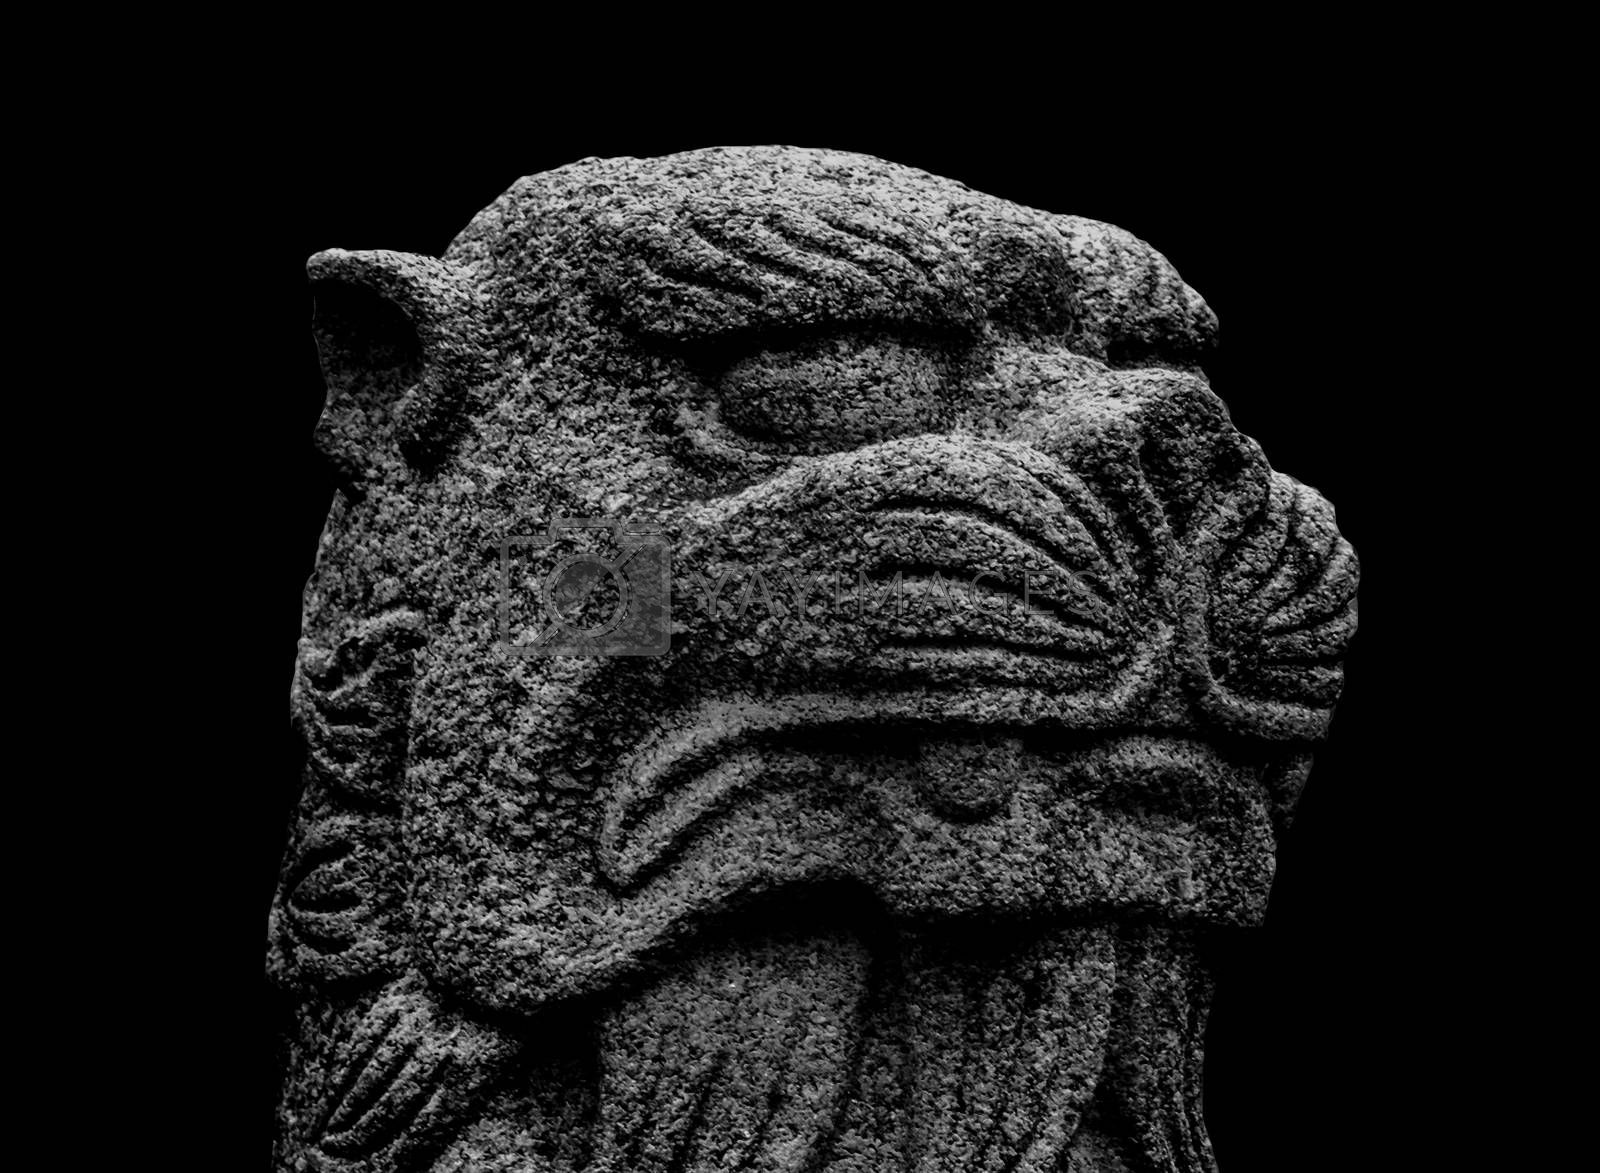 Japanese mythological feline stone sculpture isolated on black background